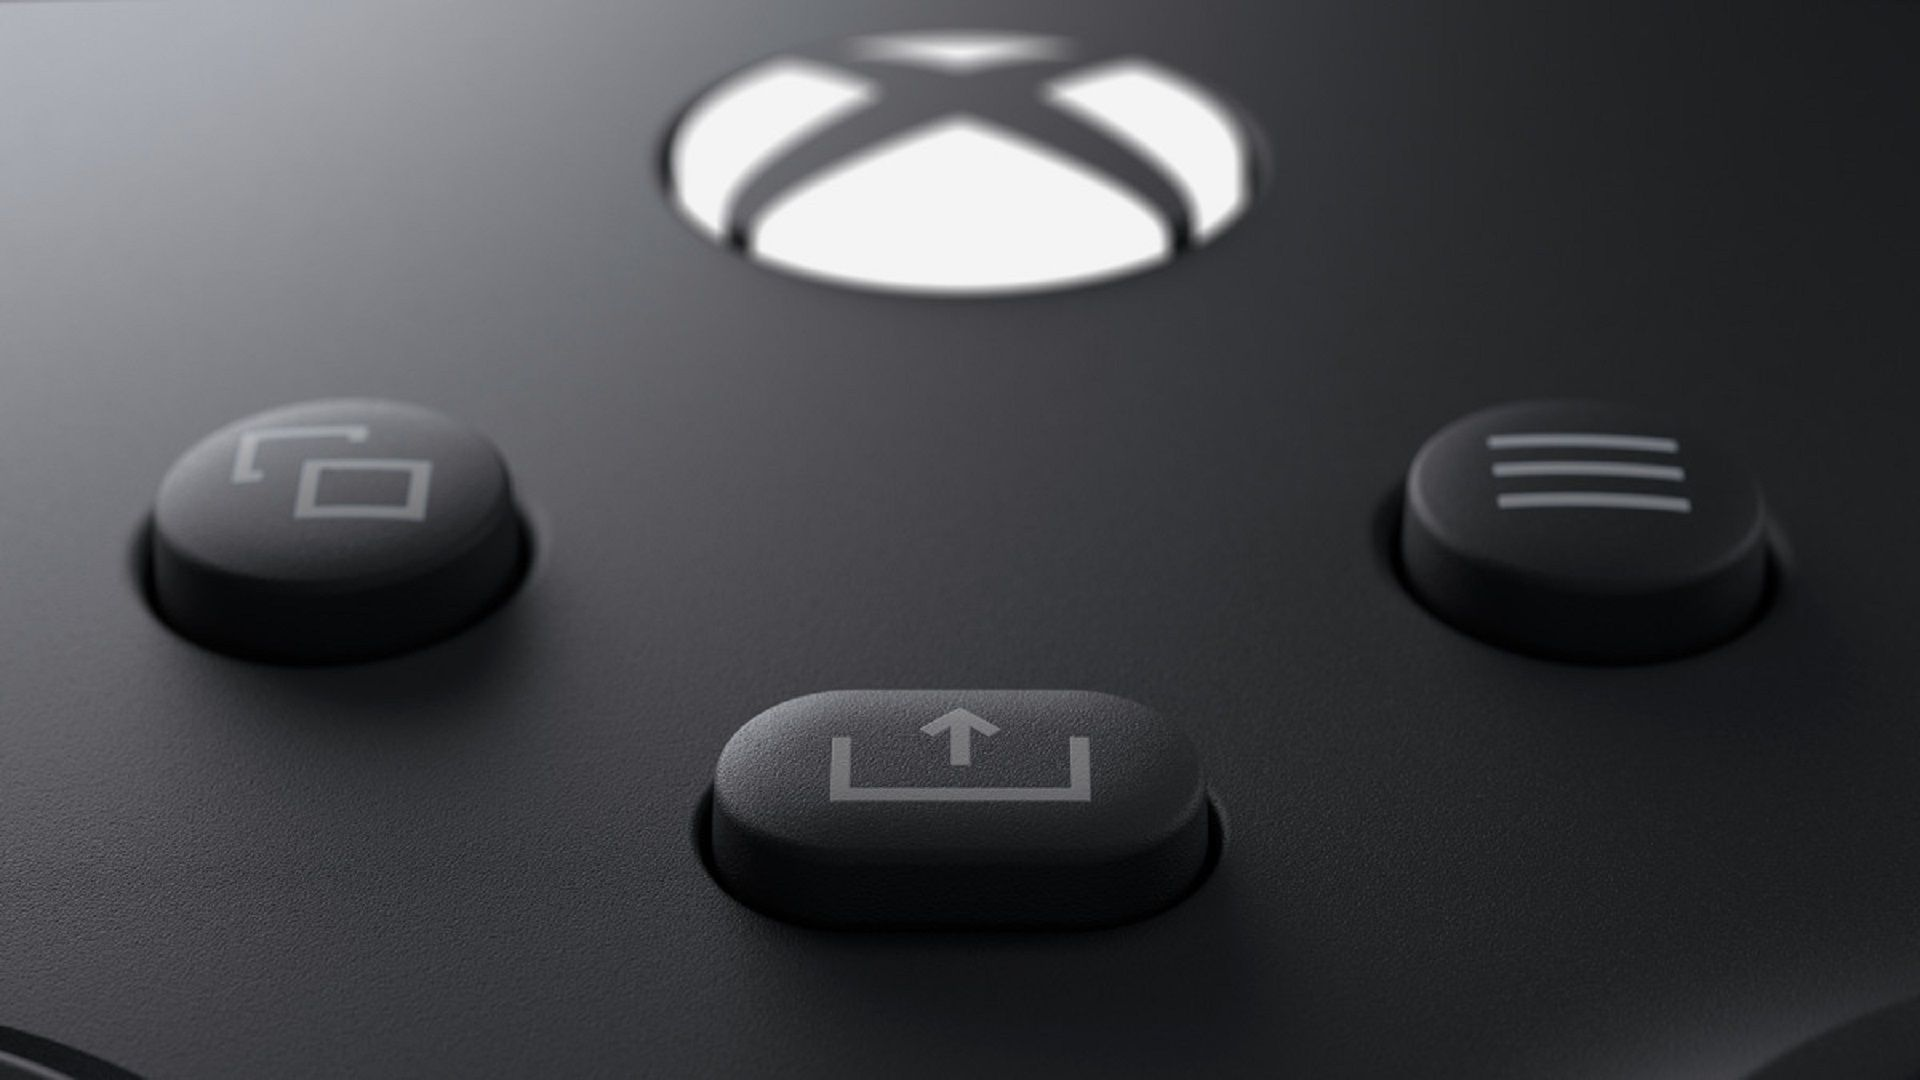 Xbox-Game-share-button